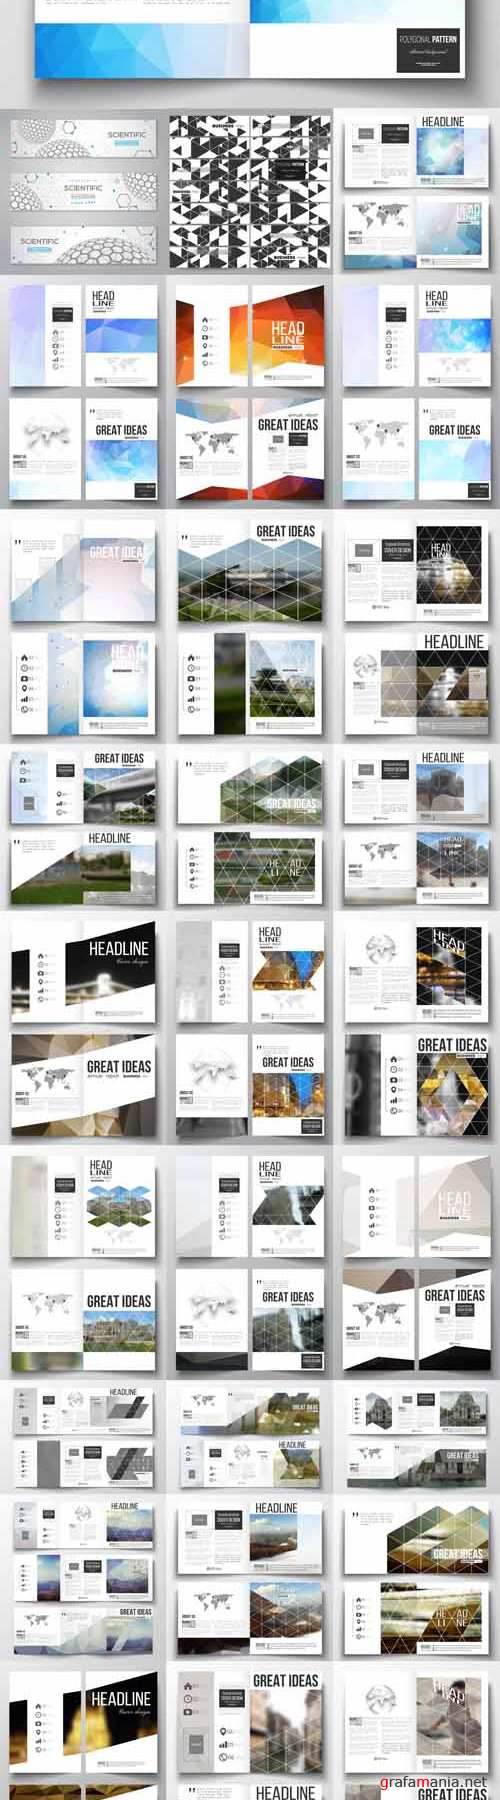 Vector 32 Annual report business templates for brochure, magazine, flyer or booklet 2